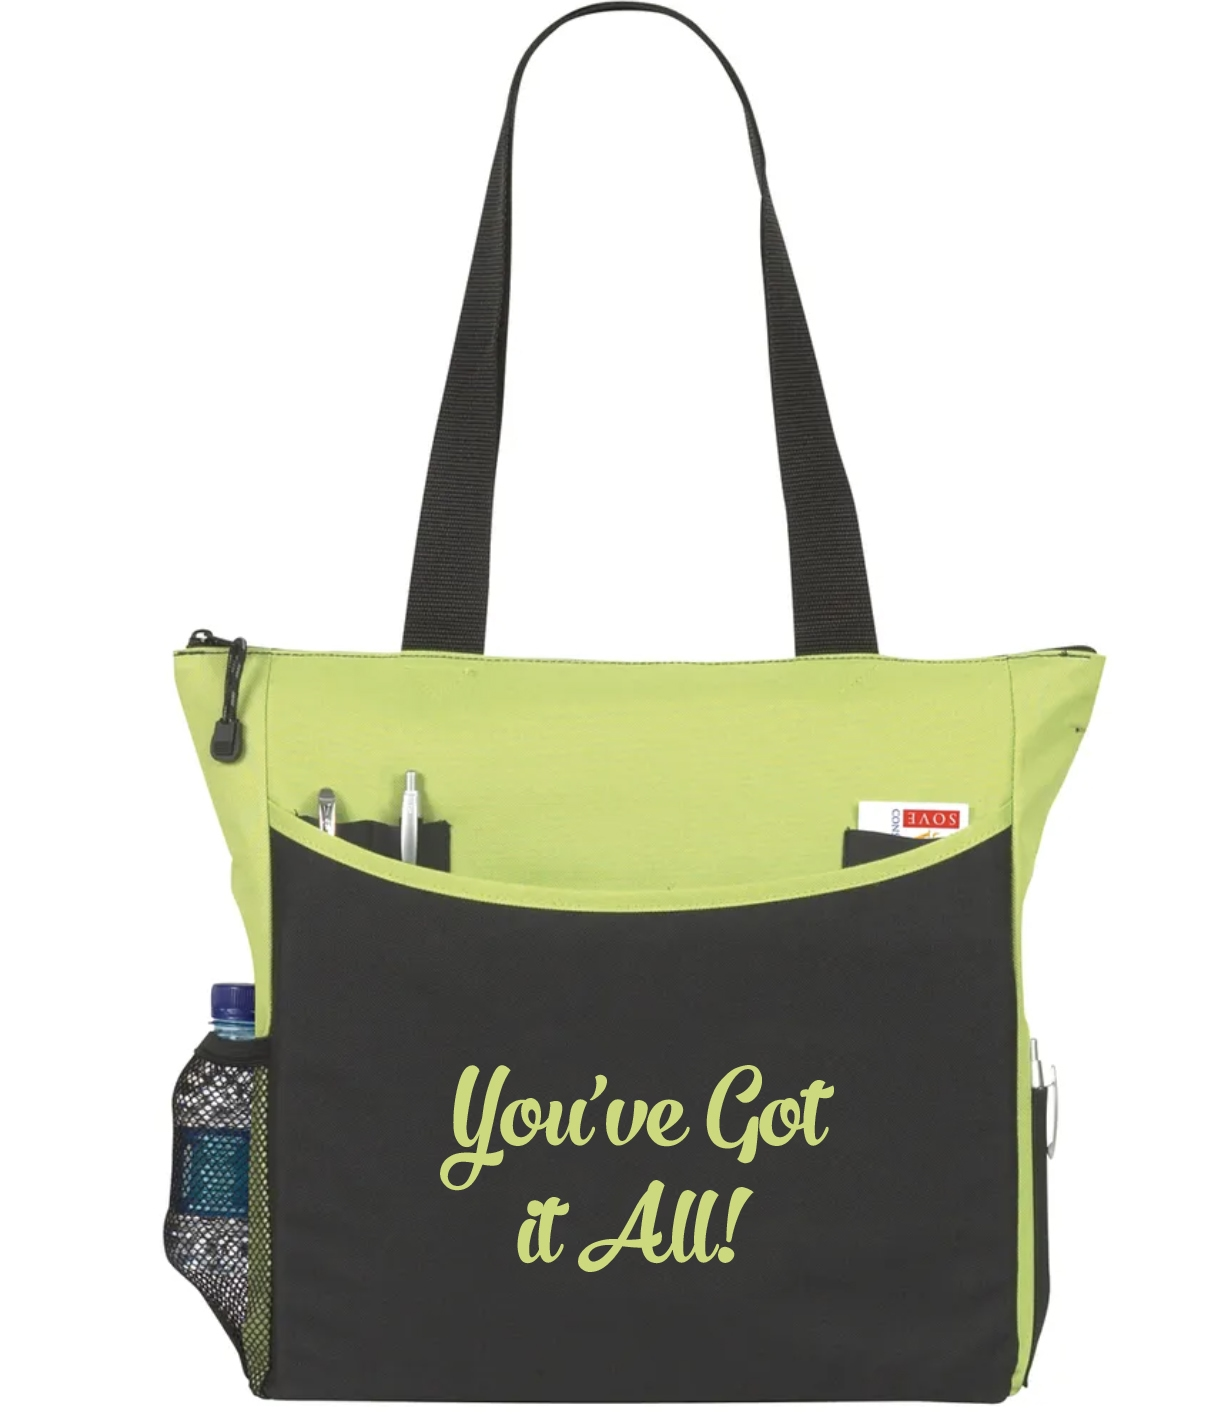 Black and green tote bag with employee appreciation imprint